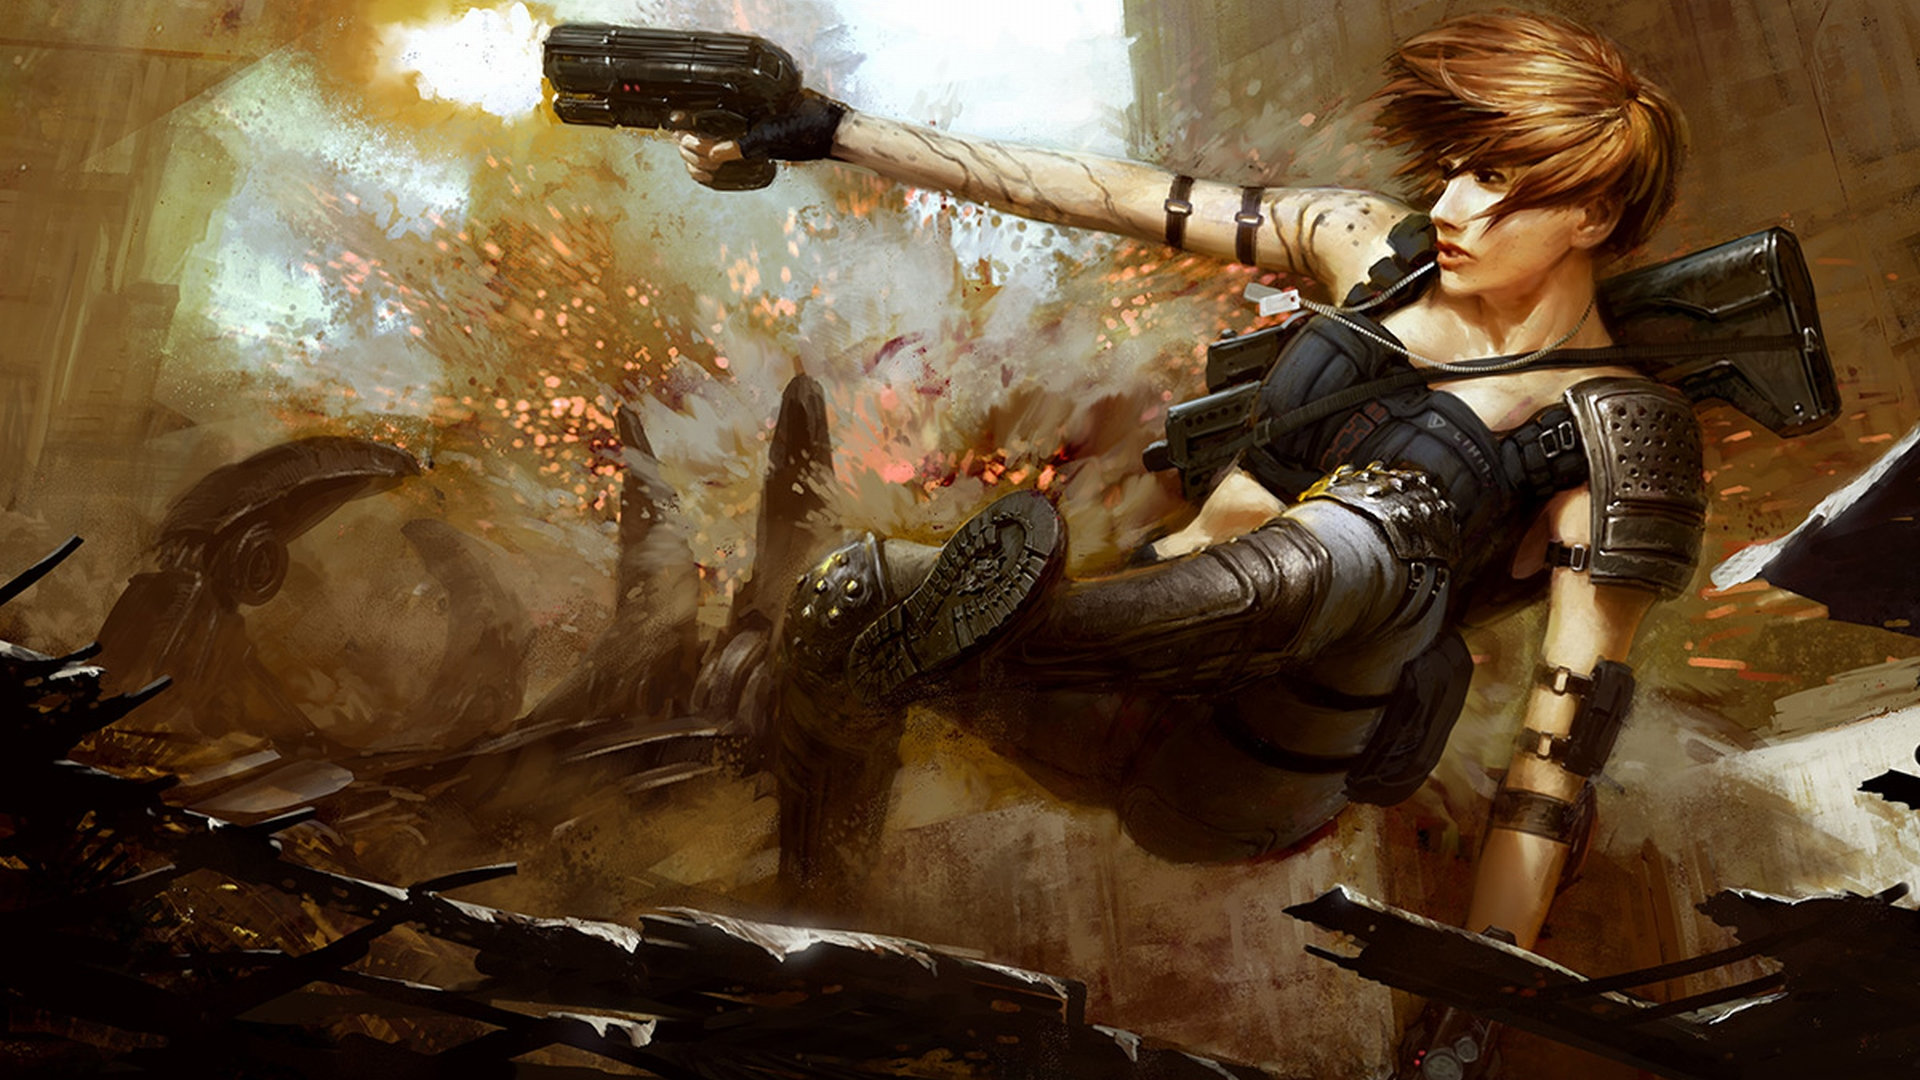 Women Warrior Full Hd Wallpaper And Background Image